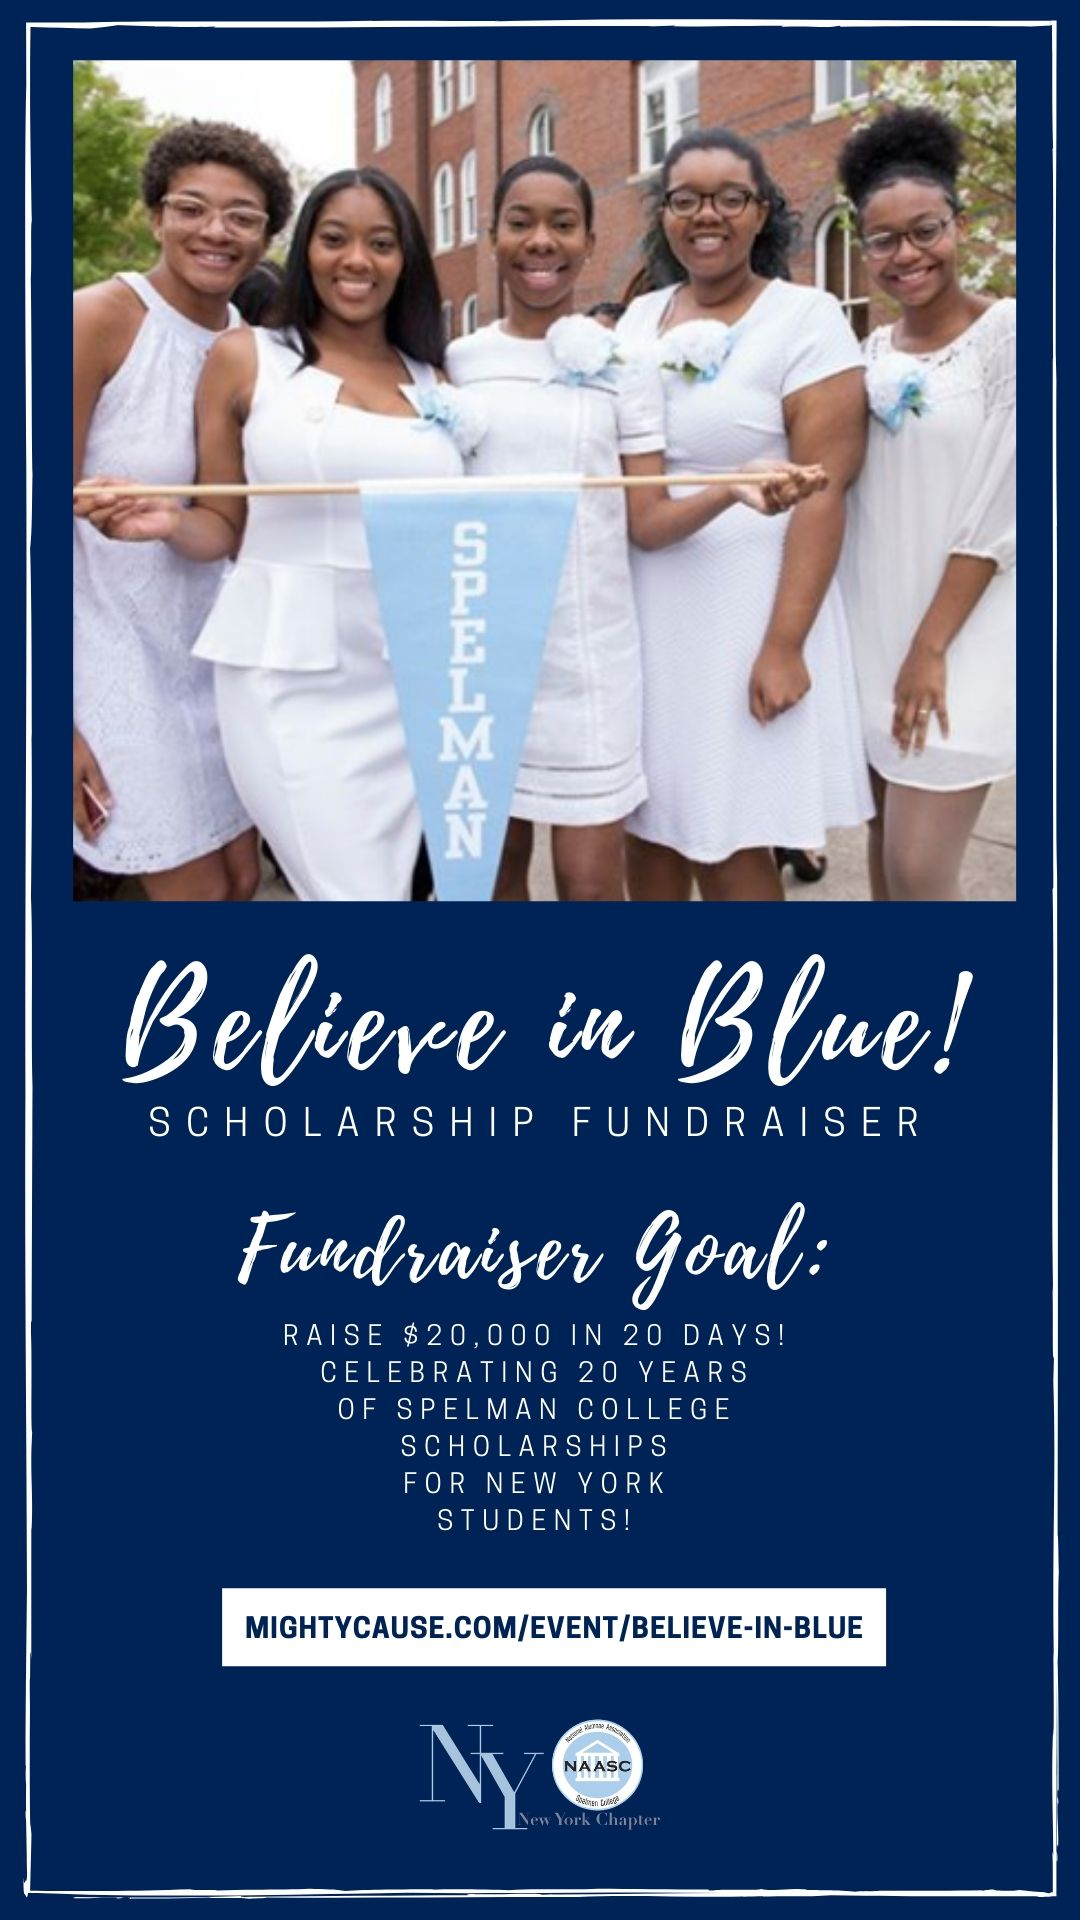 - The New York Chapter of The National Alumnae Association of Spelman College is celebrating its 20th of our scholarship fund and we would love your help in raising $20,000 in 20 days to celebrate 20 years of supporting Spelman students from New York!ABOUT OUR SCHOLARSHIP FUND: The Virginia T. Dowell Endowed Scholarship Fund provides scholarships for incoming Spelman College students from New York. During the last 20 years, we have provided over 50 students with $200,000 in funding to alleviate college costs and ensure students are able to graduate from Spelman College.Donate and help us us raise $20,000 by June 30!